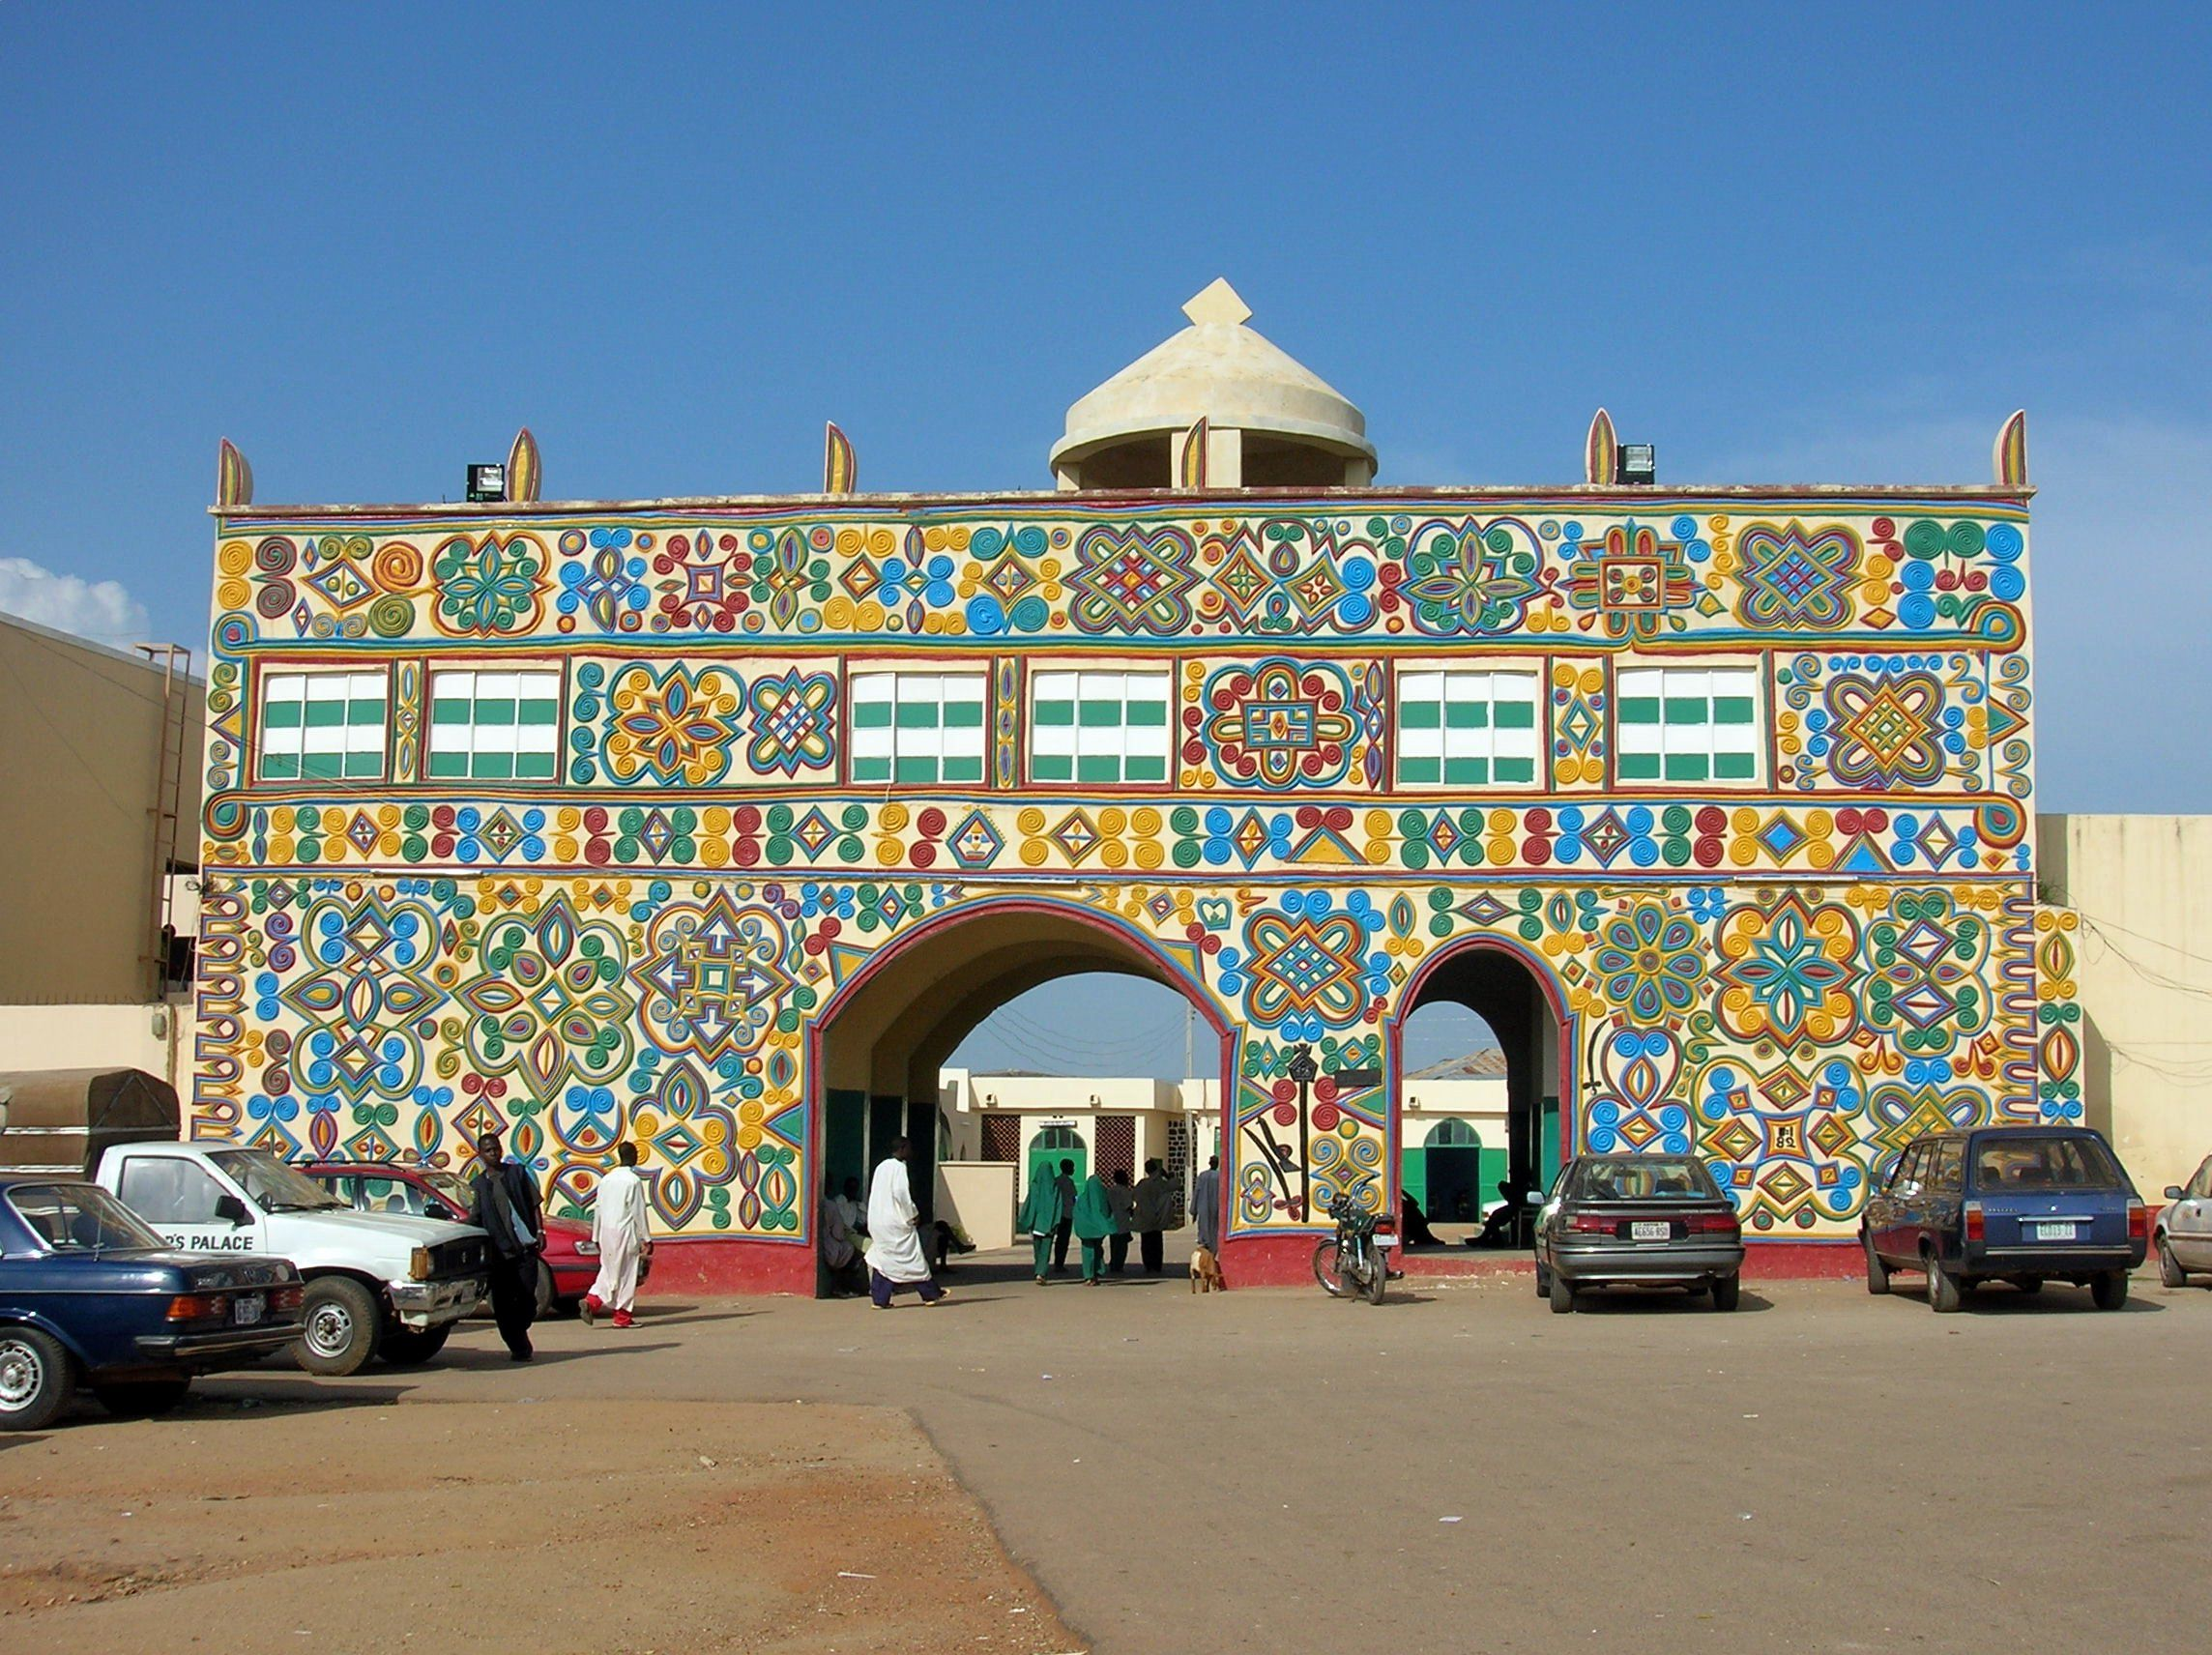 Kanogate gate to the palace of the emir of zazzau zaria a major city in kaduna state in northern nigeria wikipedia the free encyclopedia